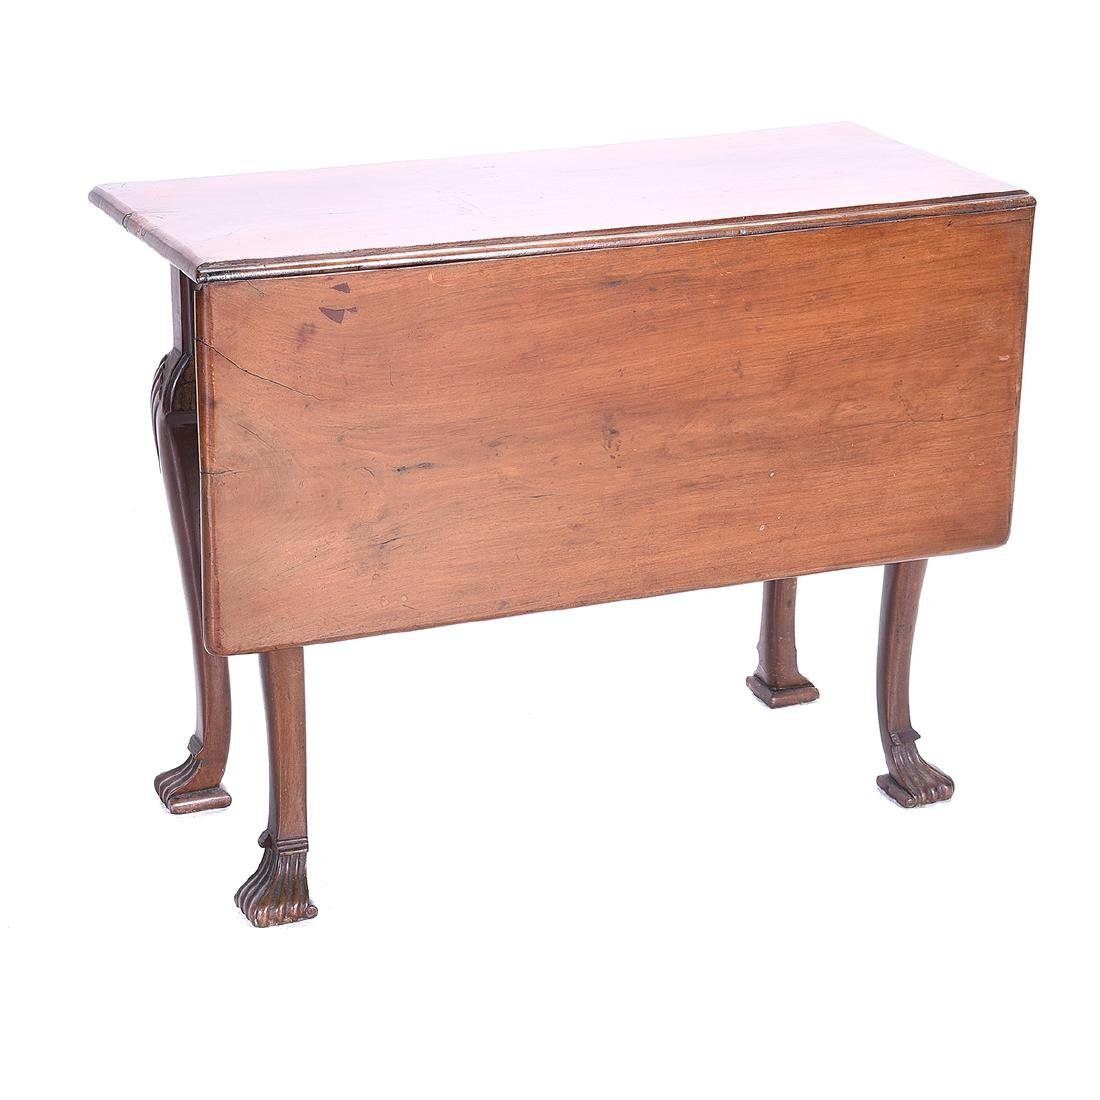 Chippendale Drop Leaf Table - 3